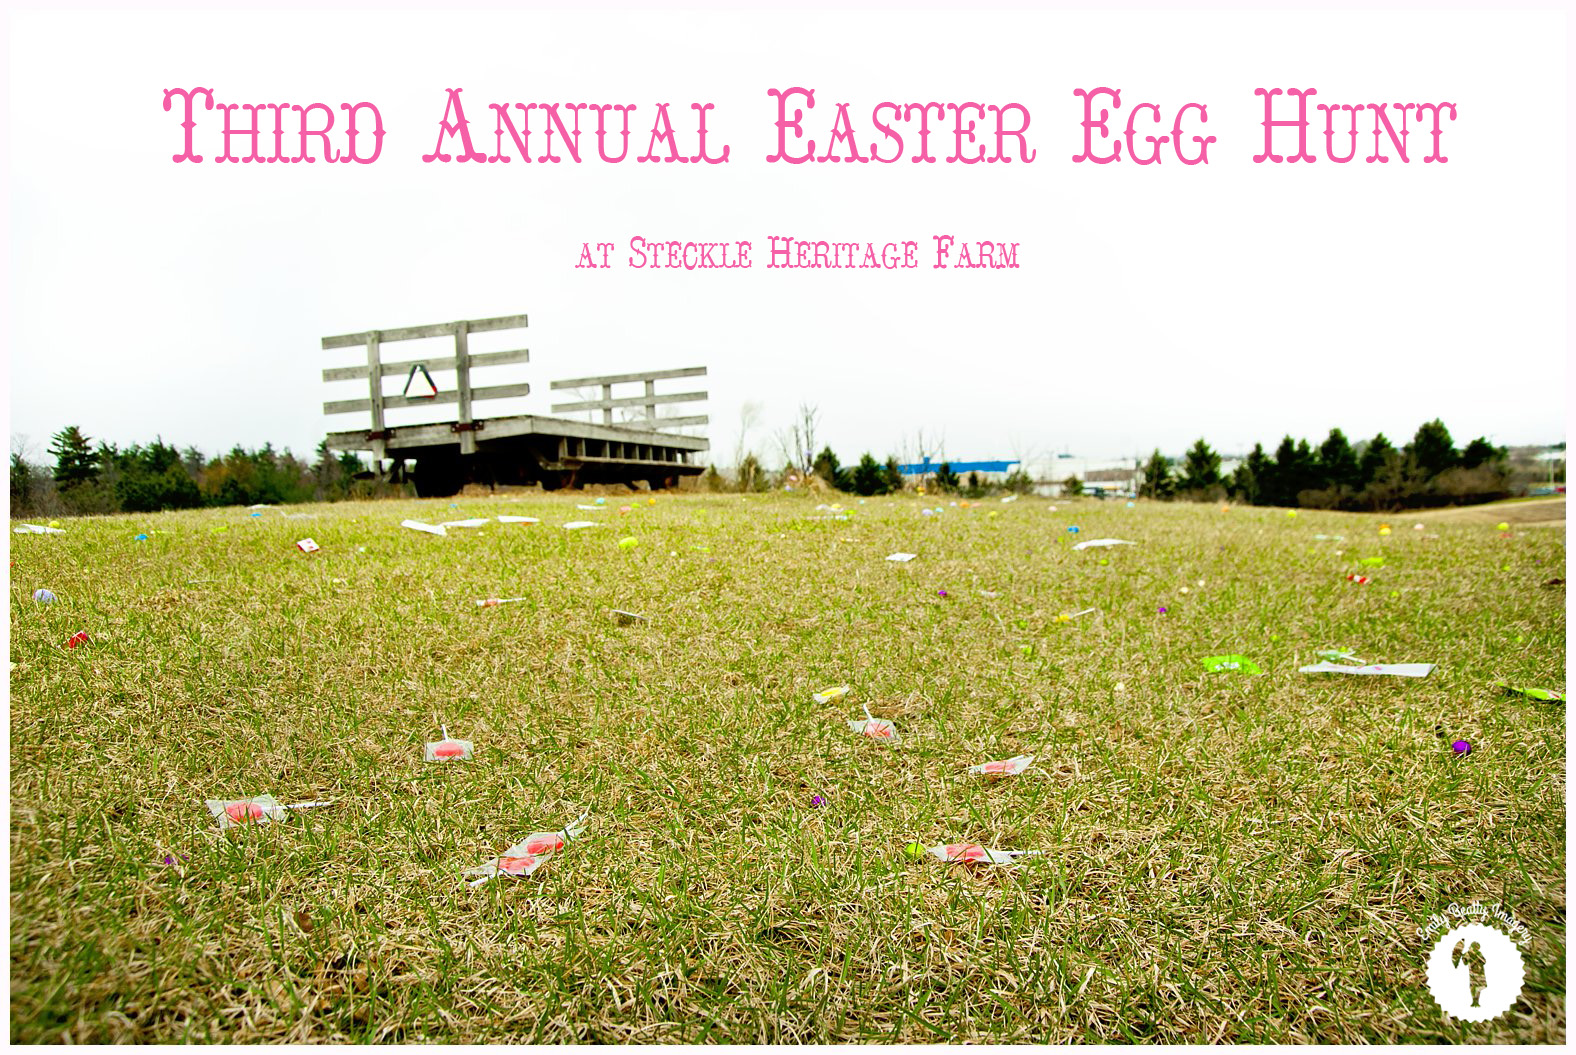 EasterEggHunt2014_EBI5002edit_*WMtitle